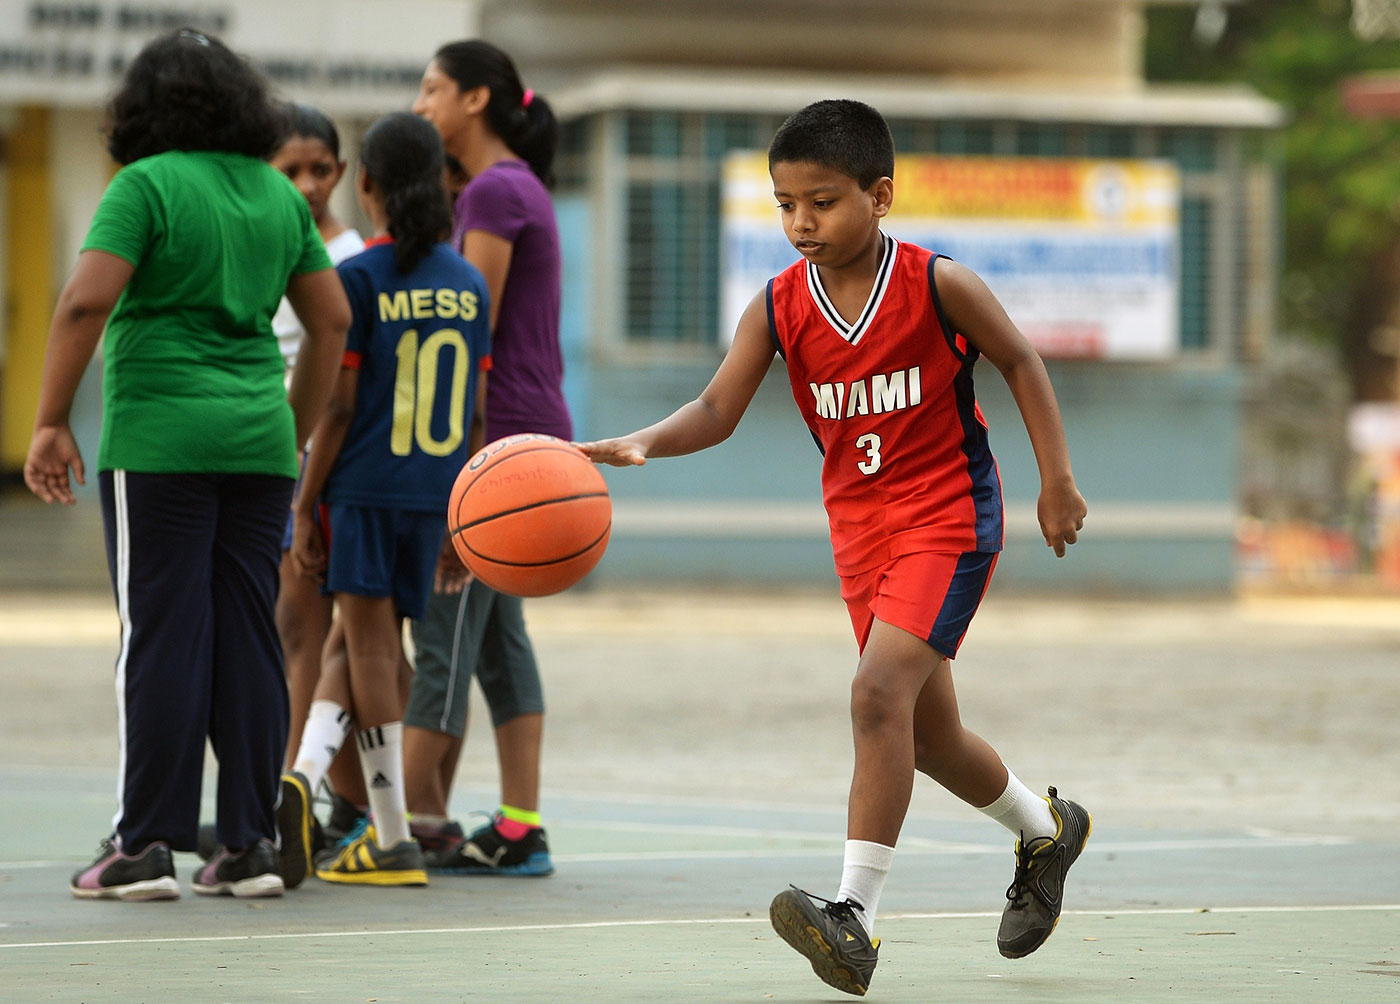 A child dribbles a basketball at a school camp